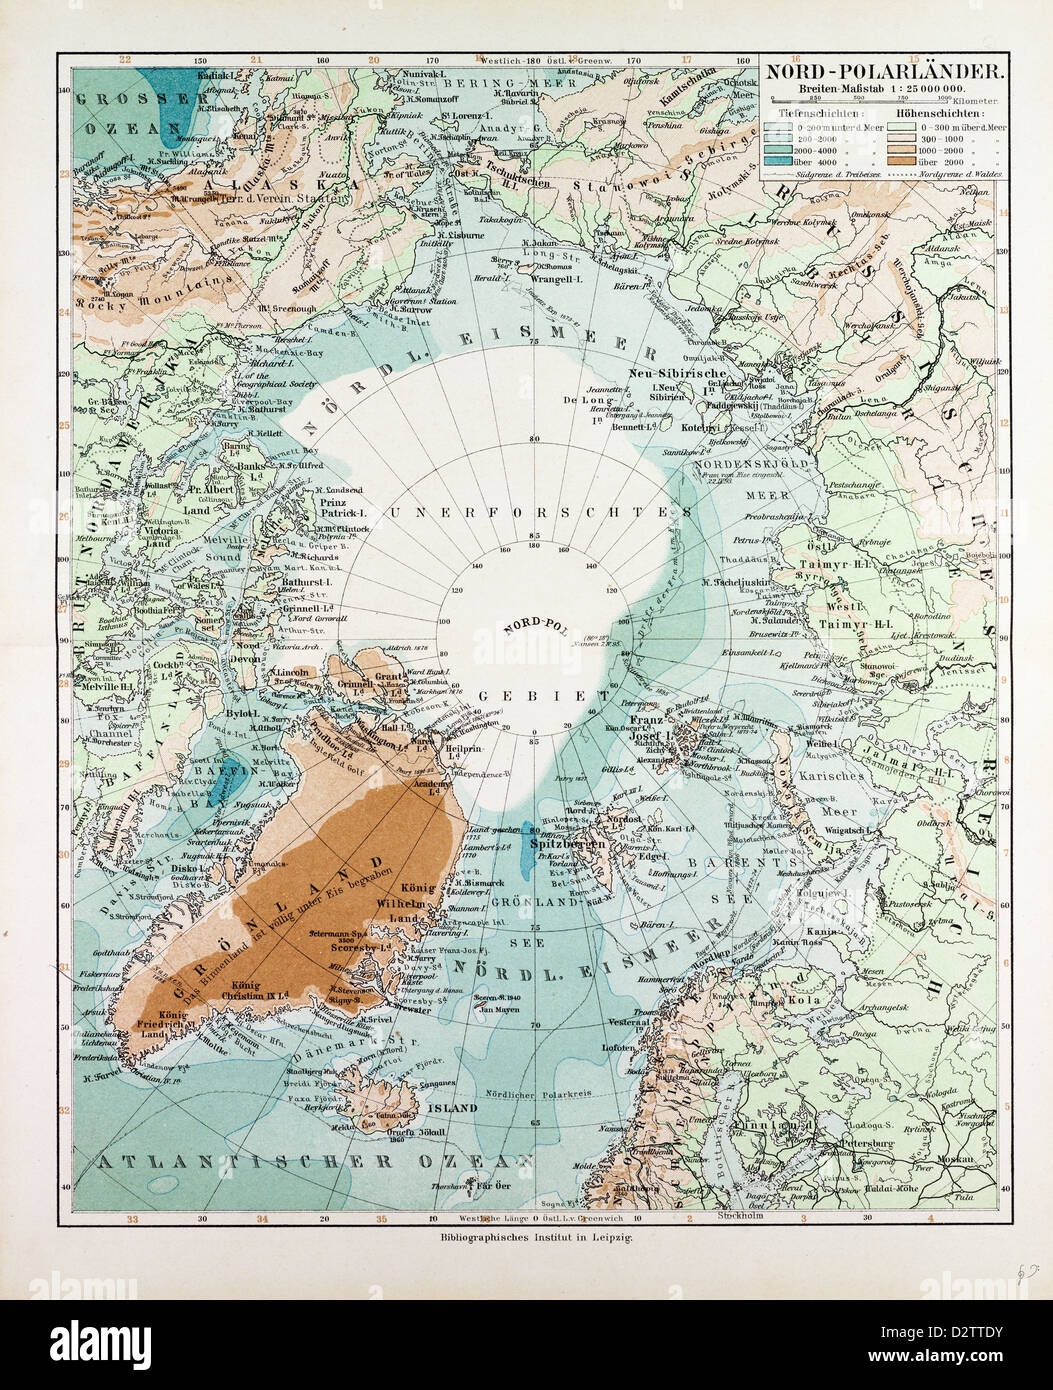 MAP OF COUNTRIES AROUND THE NORTH POLE 1899 - Stock Image